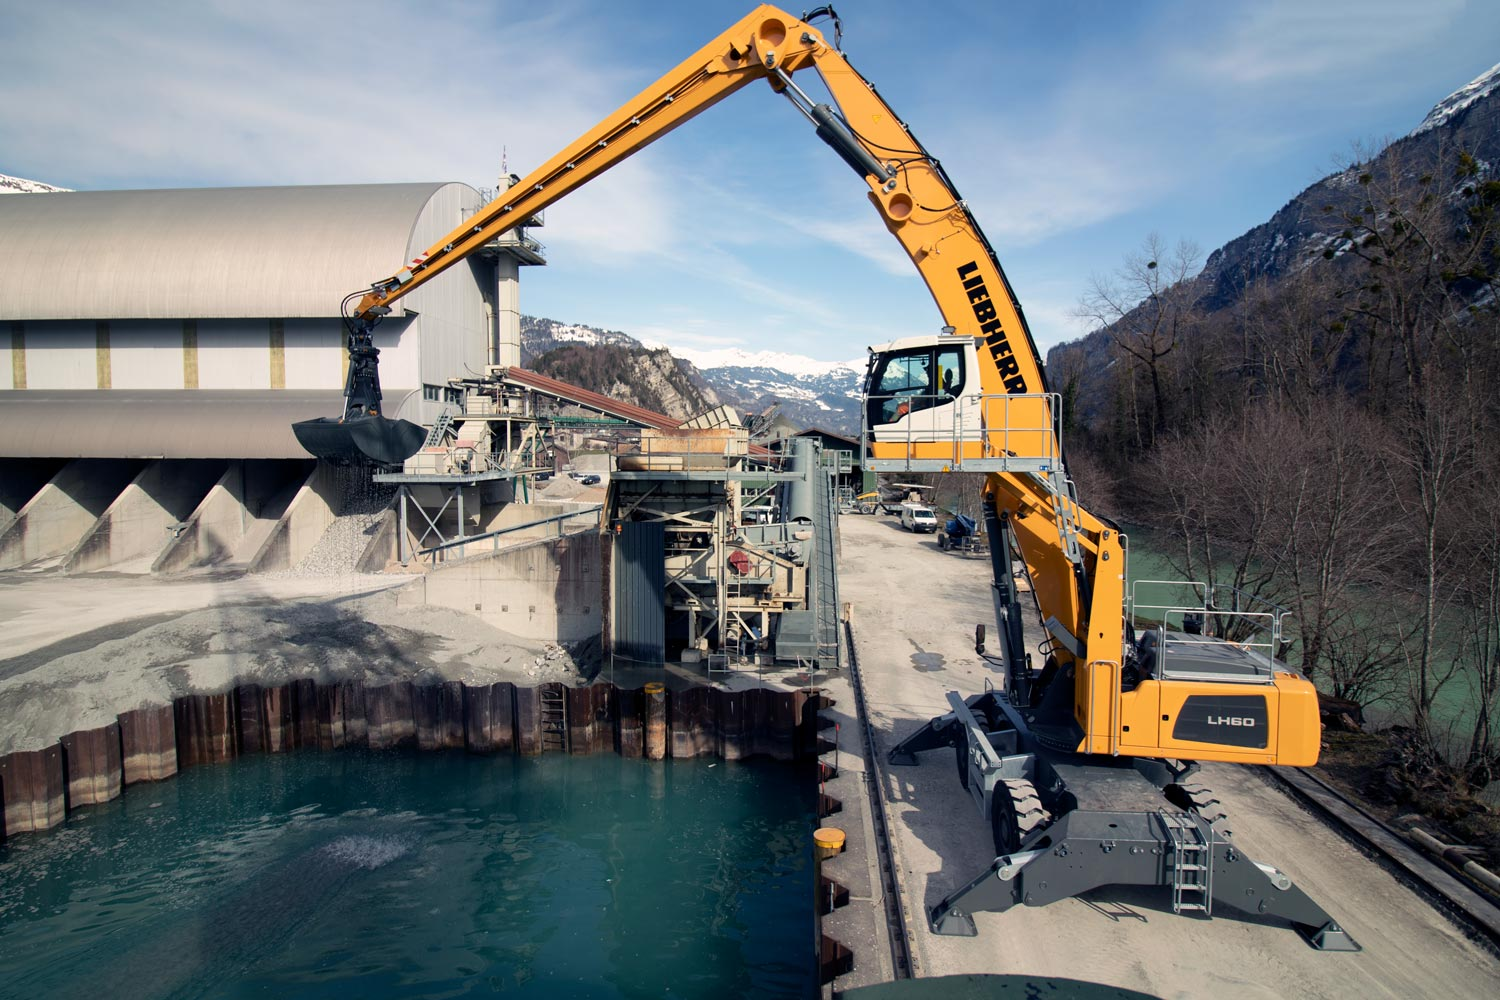 Fully operational for Swiss natural product: Liebherr LH 60 M Port Litronic material handler